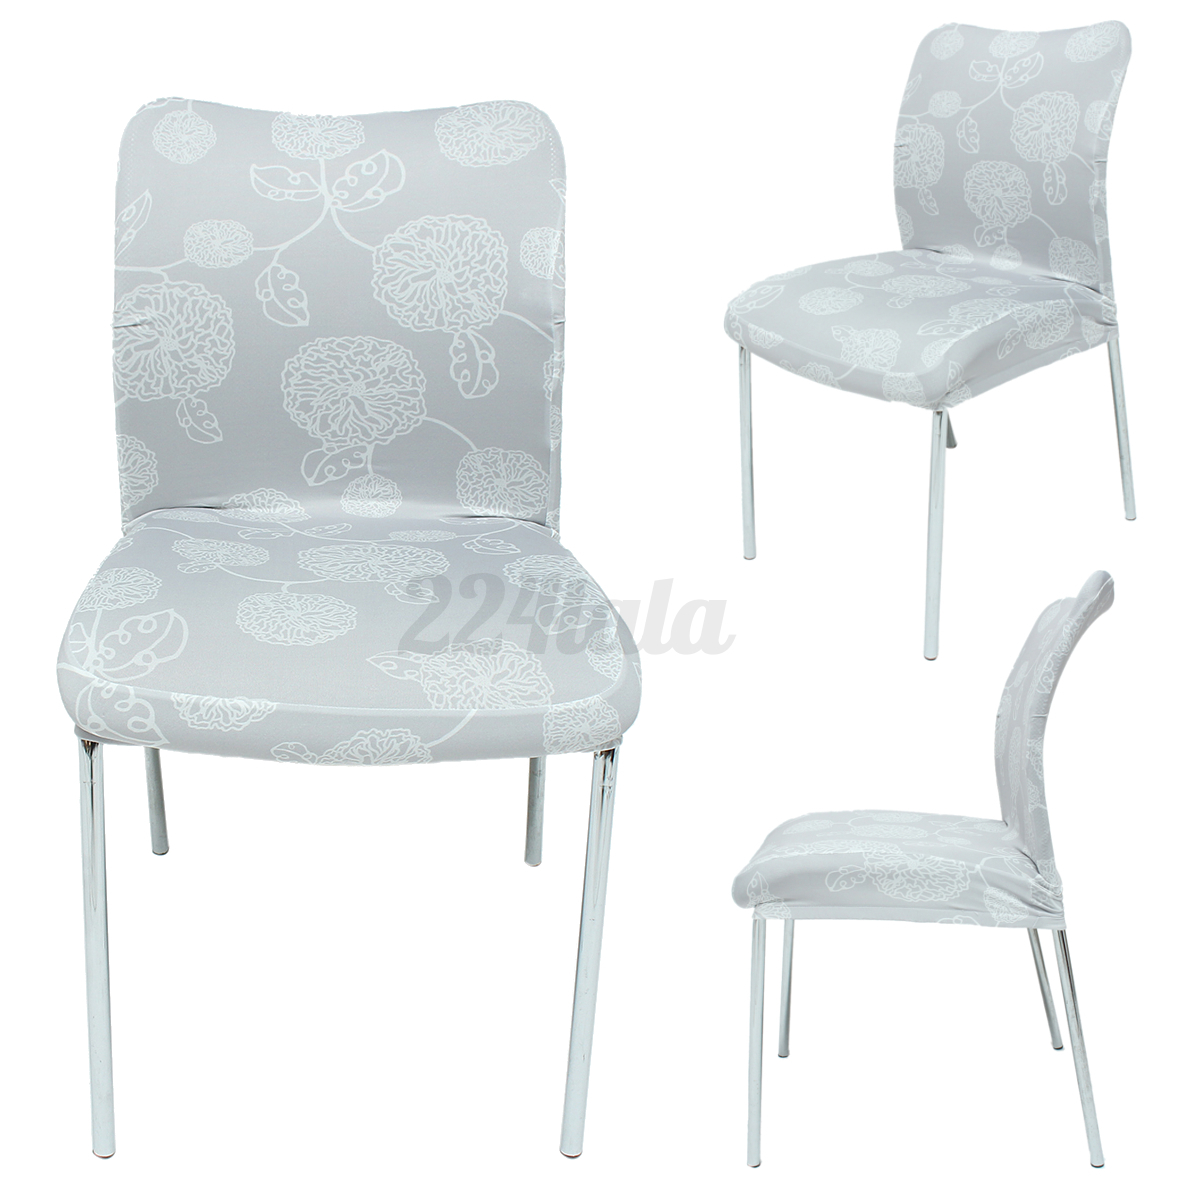 chair covers universal ergonomic posture kneeling gray seat cover high elastic